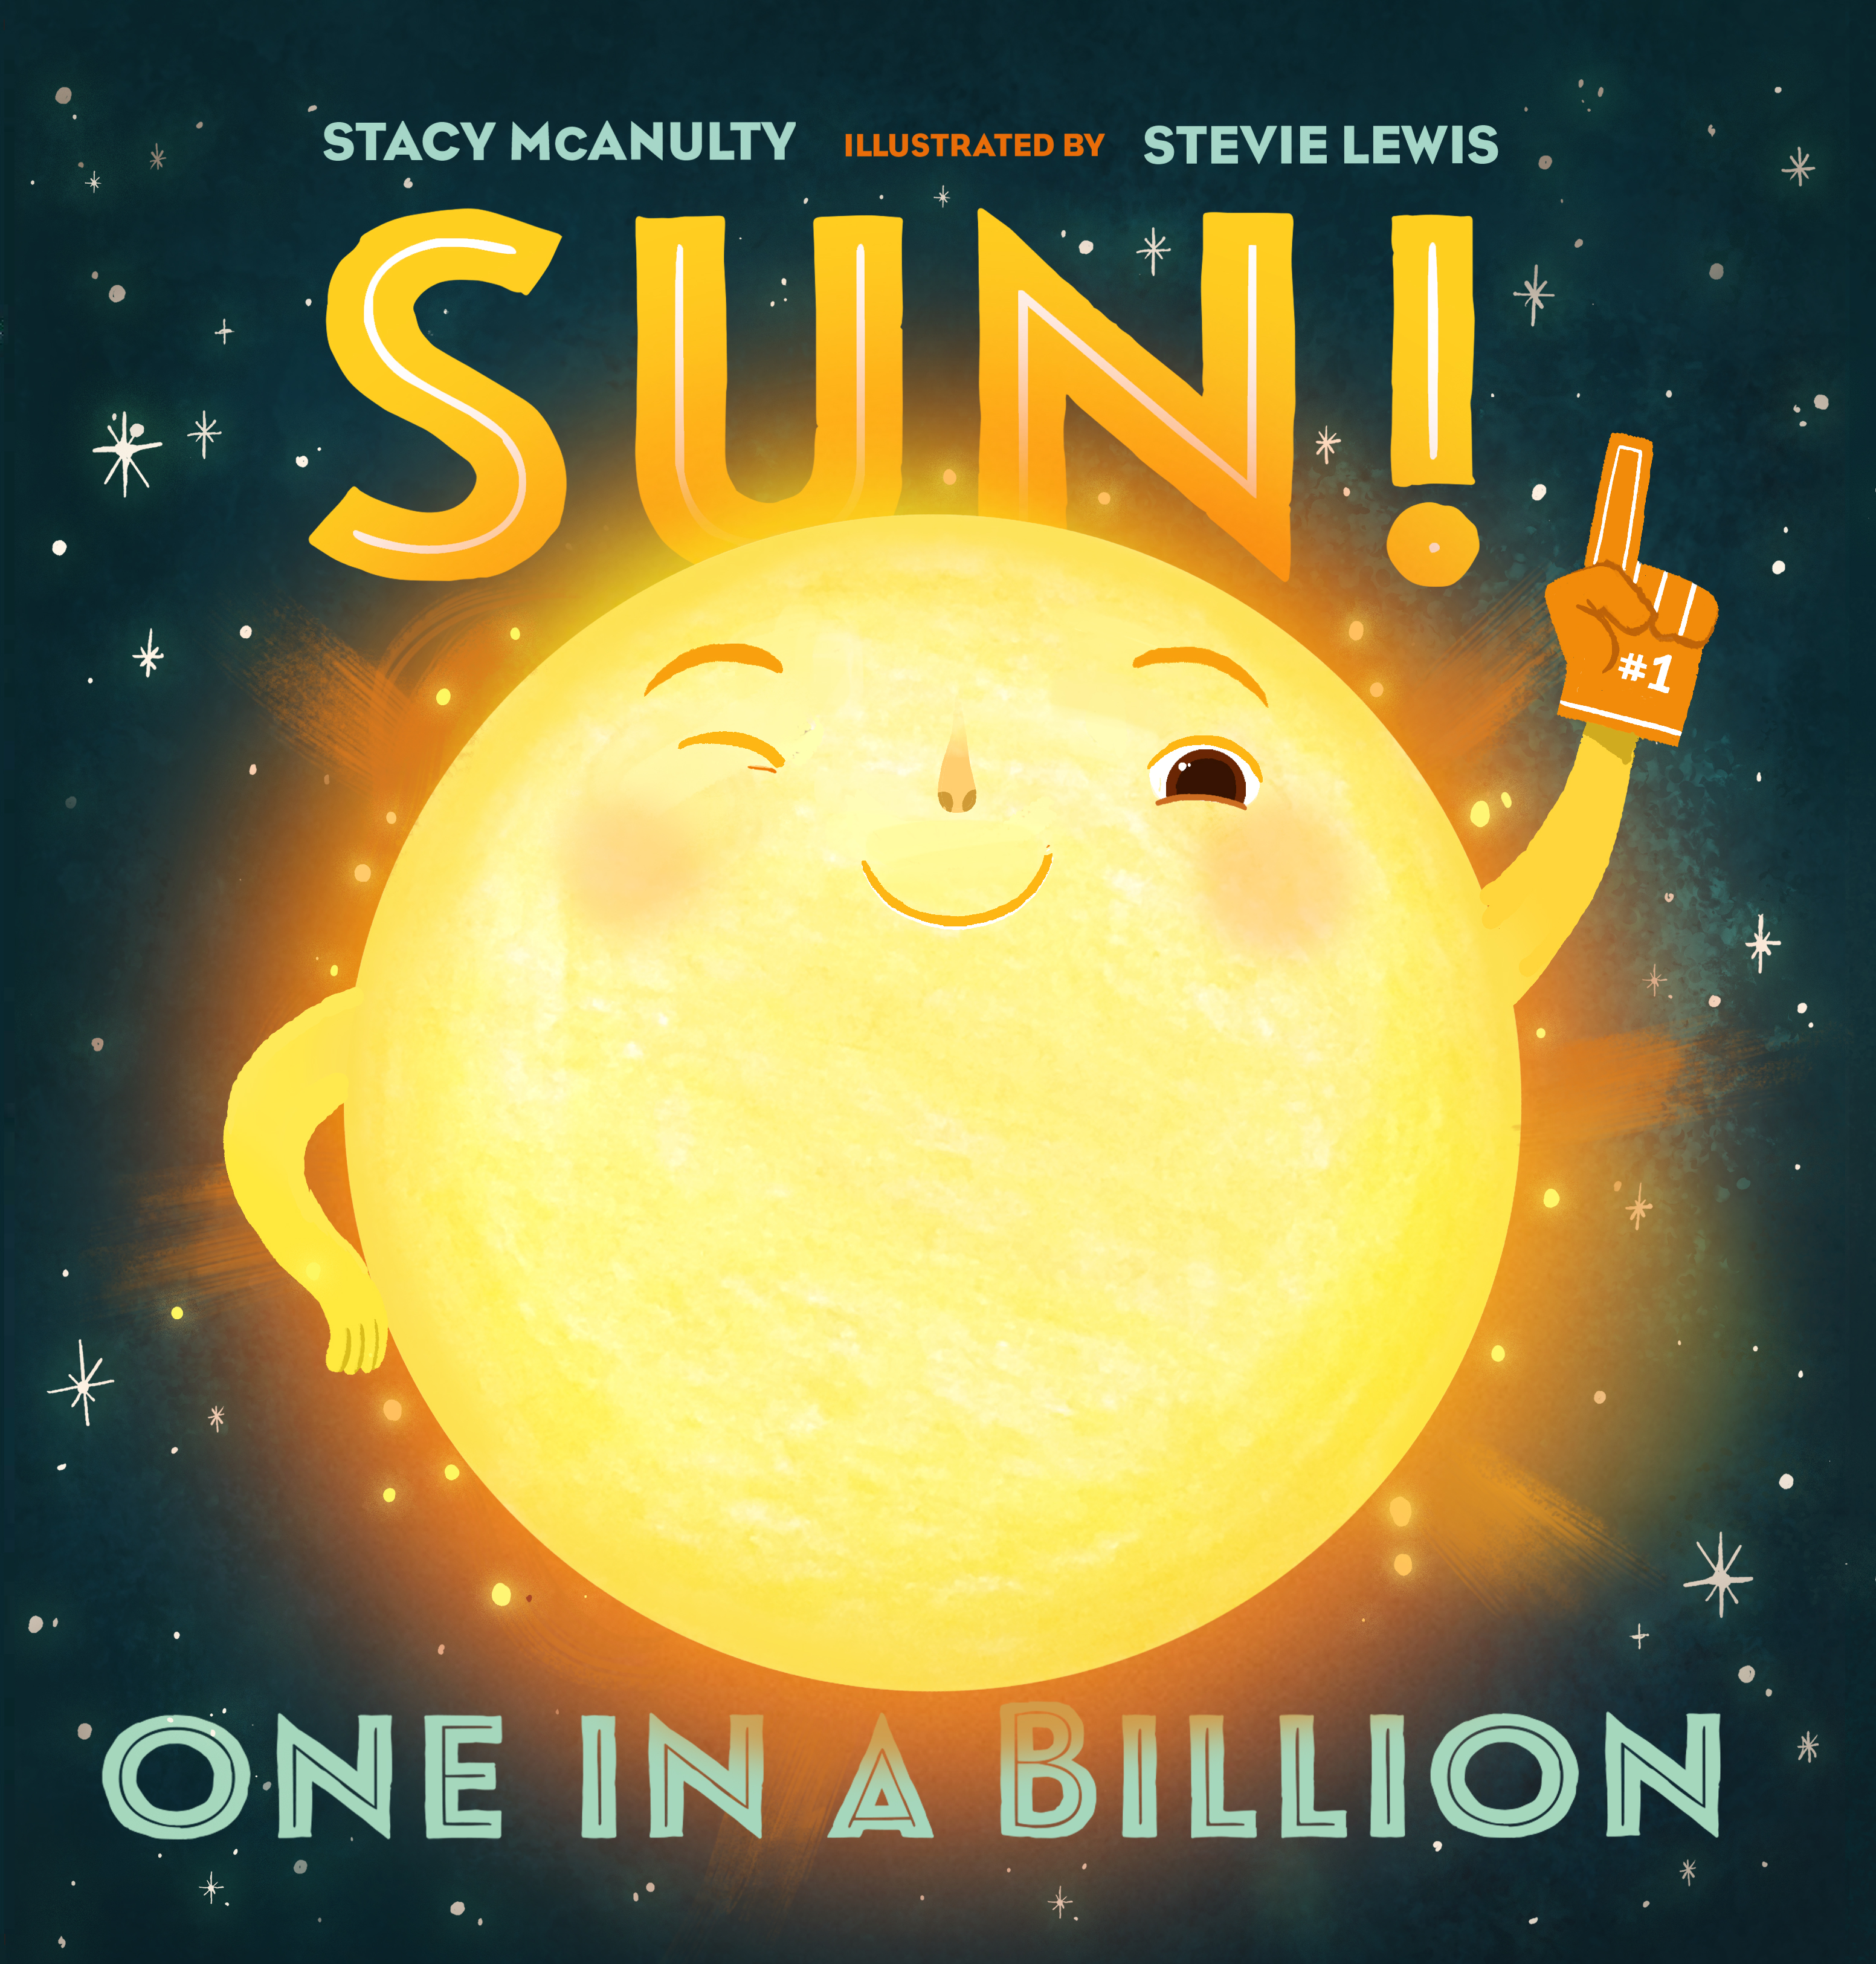 Sun! One in a Billion Author: Stevie Lewis Publisher: Macmillan, October 23, 2018